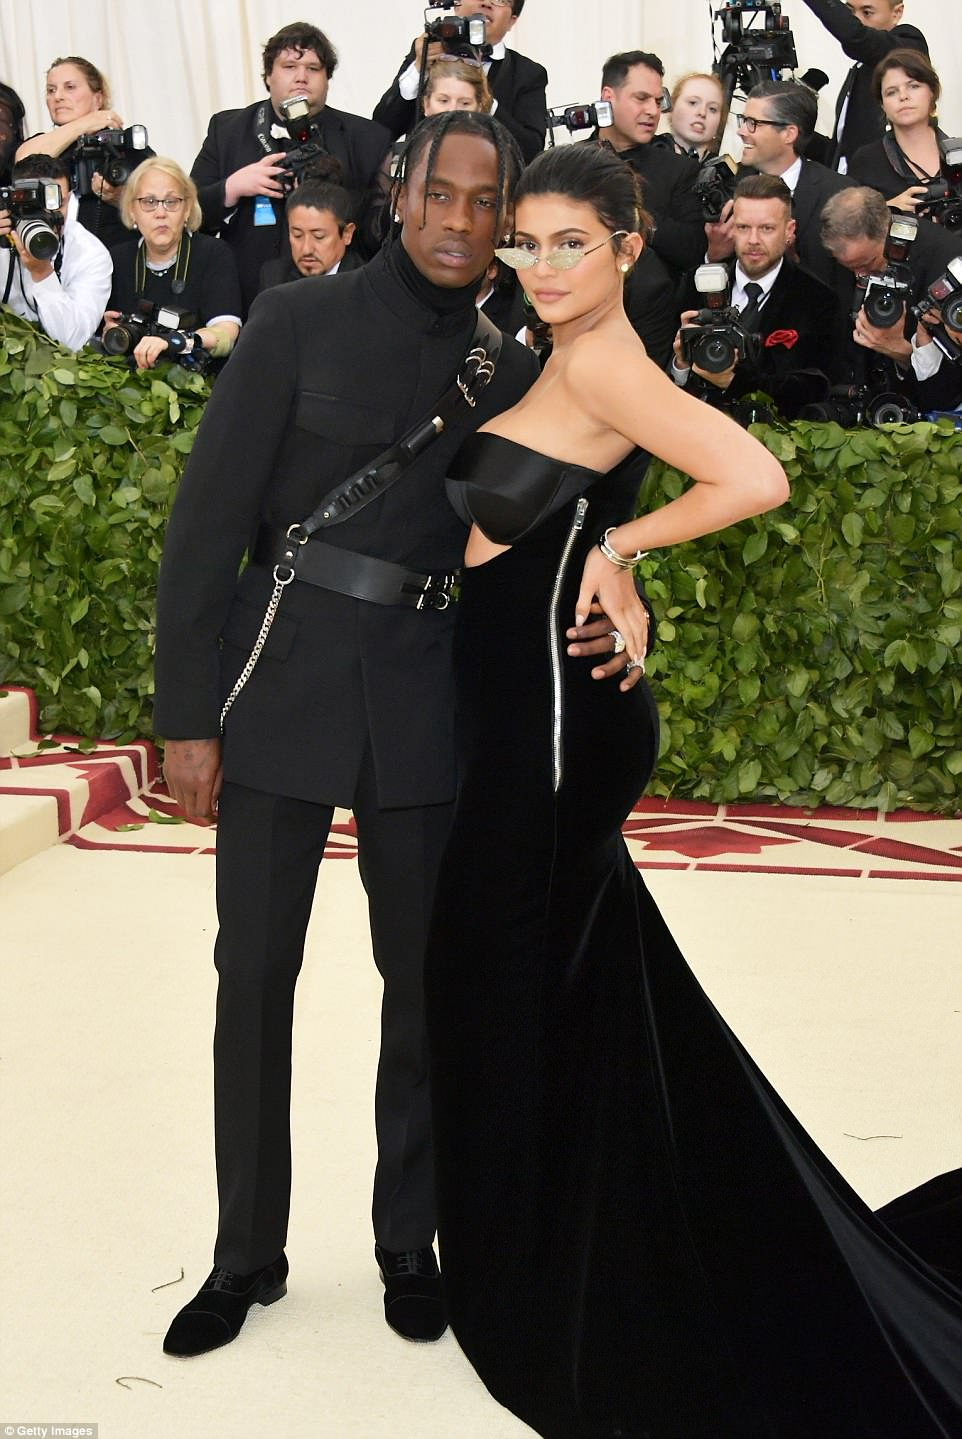 George and Amal at Met Gala 4BF4CA2F00000578-5701183-image-m-318_1525739323238